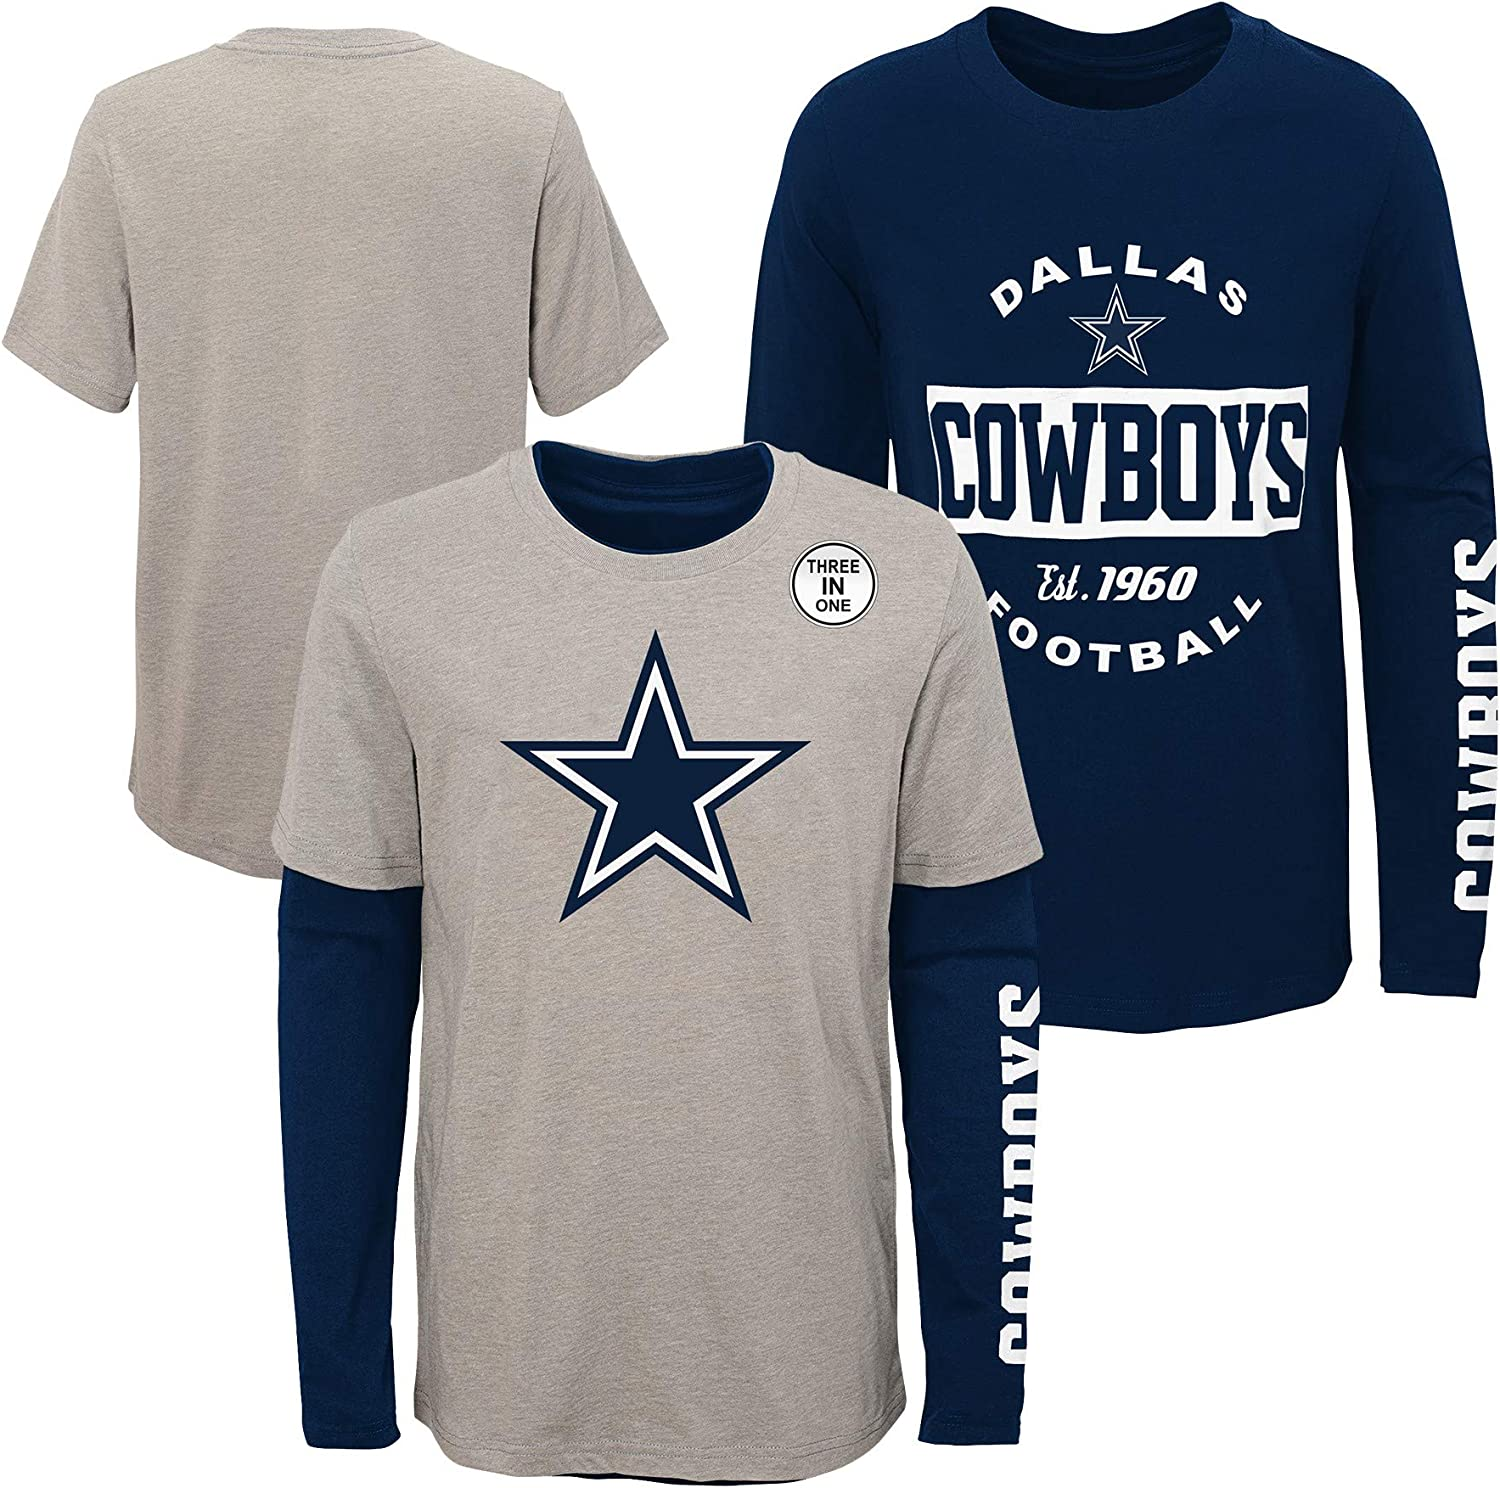 Dallas Cowboys Boys Goal Line Stated Kids 3-in-1 T-Shirt